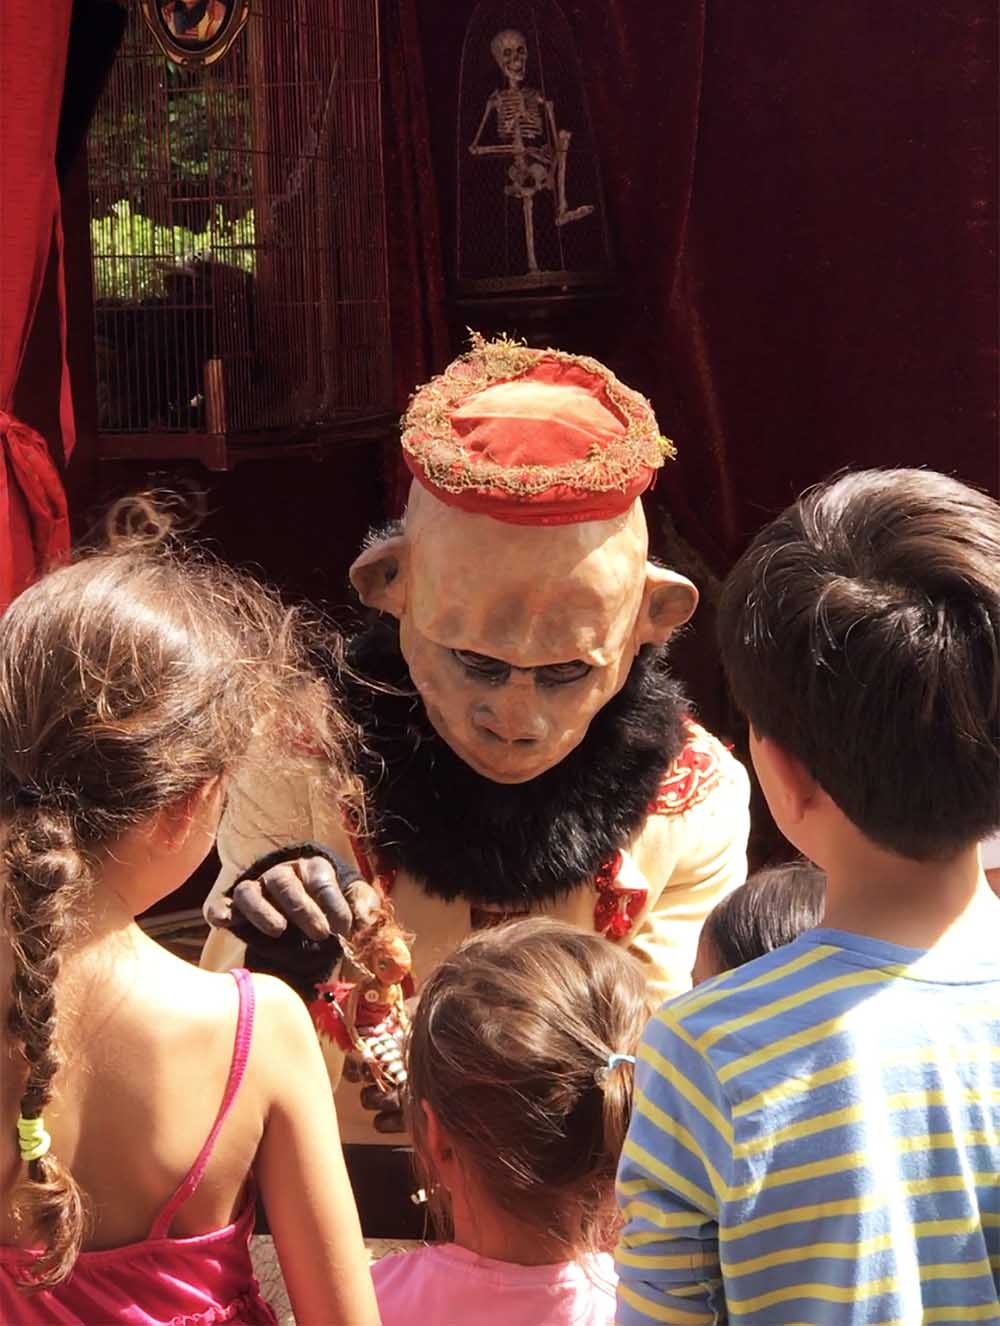 Another performer, who has the kids completely enthralled in his act - and what a costume!